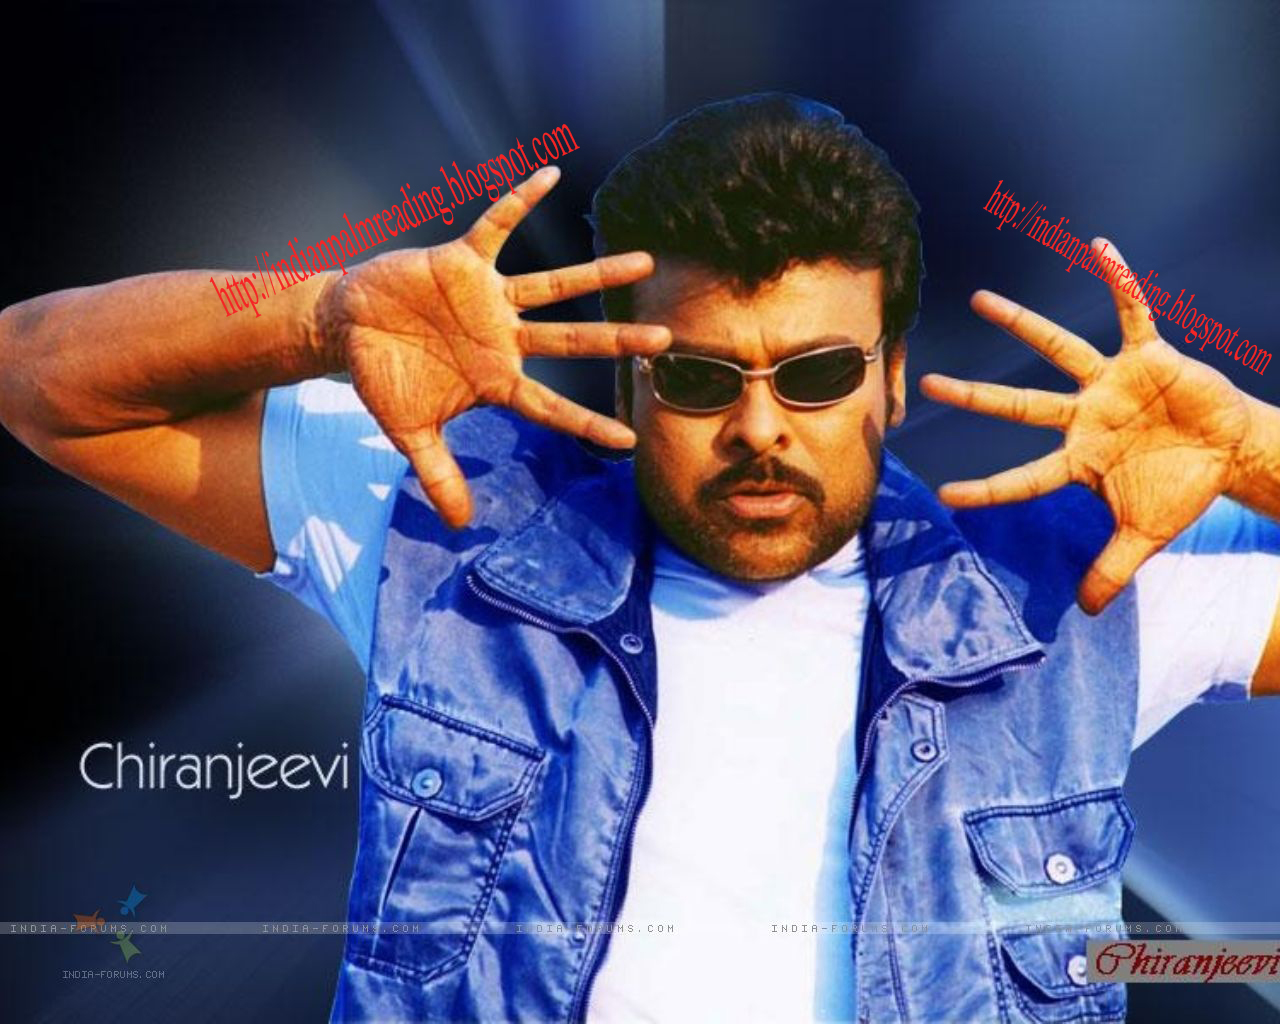 Palm Image Of Chiranjeevi Palmistry Astrology | INDIAN PALM READING